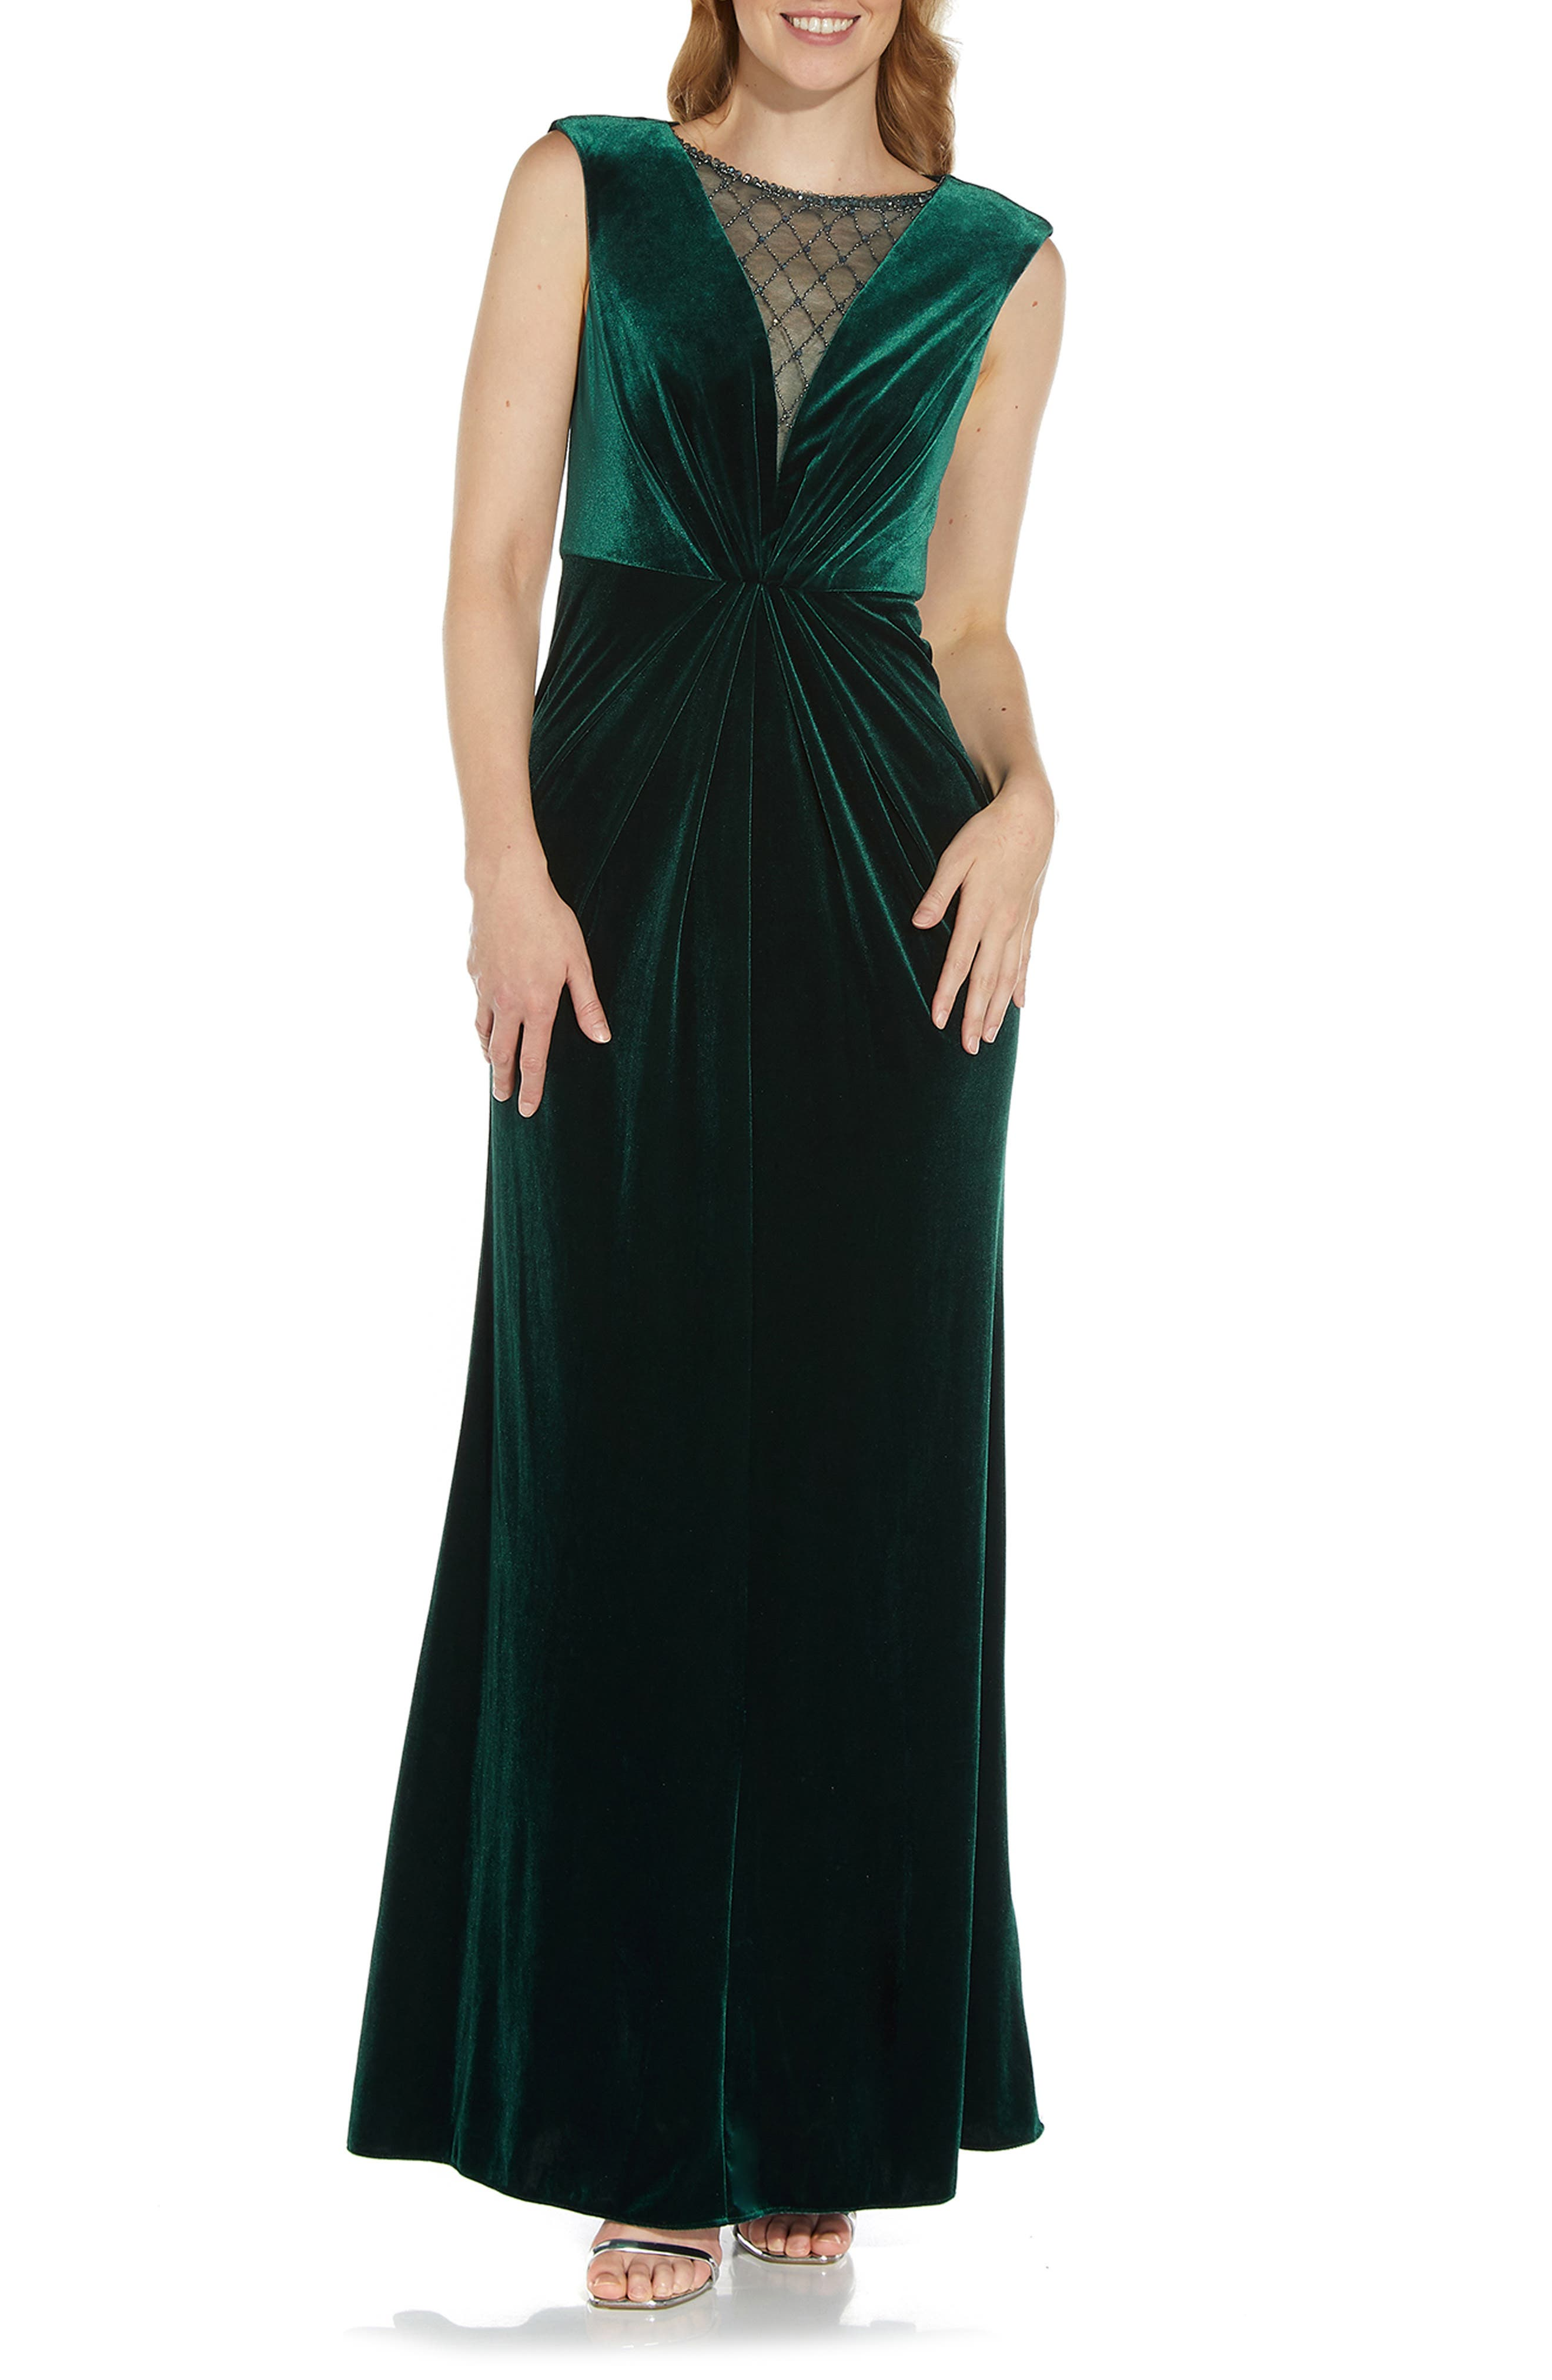 1940s Evening, Prom, Party, Formal, Ball Gowns Womens Adrianna Papell Embellished Neck Velvet Mermaid Gown Size 10 - Green $229.00 AT vintagedancer.com